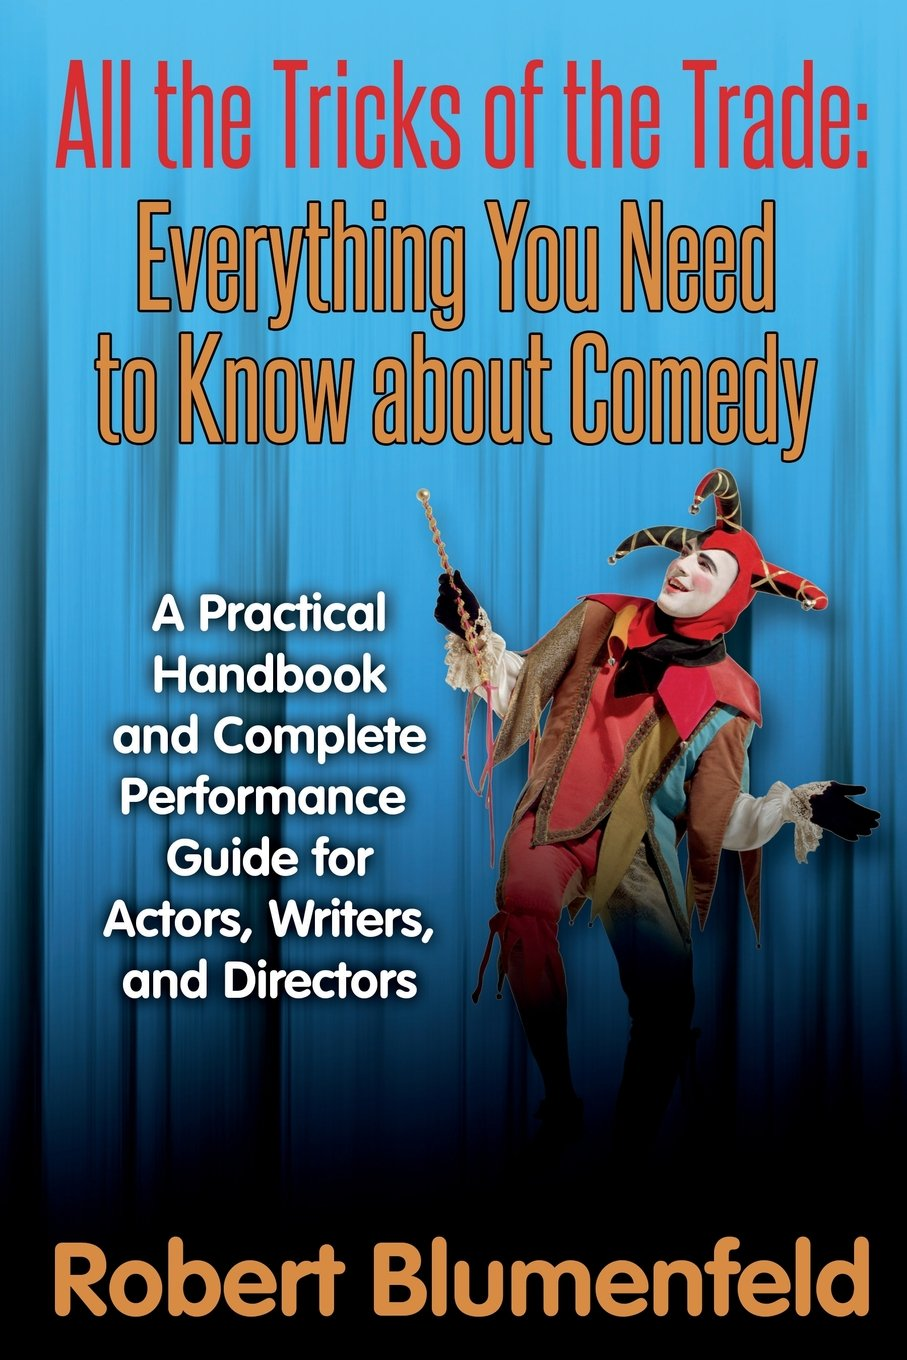 Download All the Tricks of the Trade: Everything You Need to Know about Comedy: A Practical Handbook and Complete Performance Guide for Actors, Writers, and Directors pdf epub